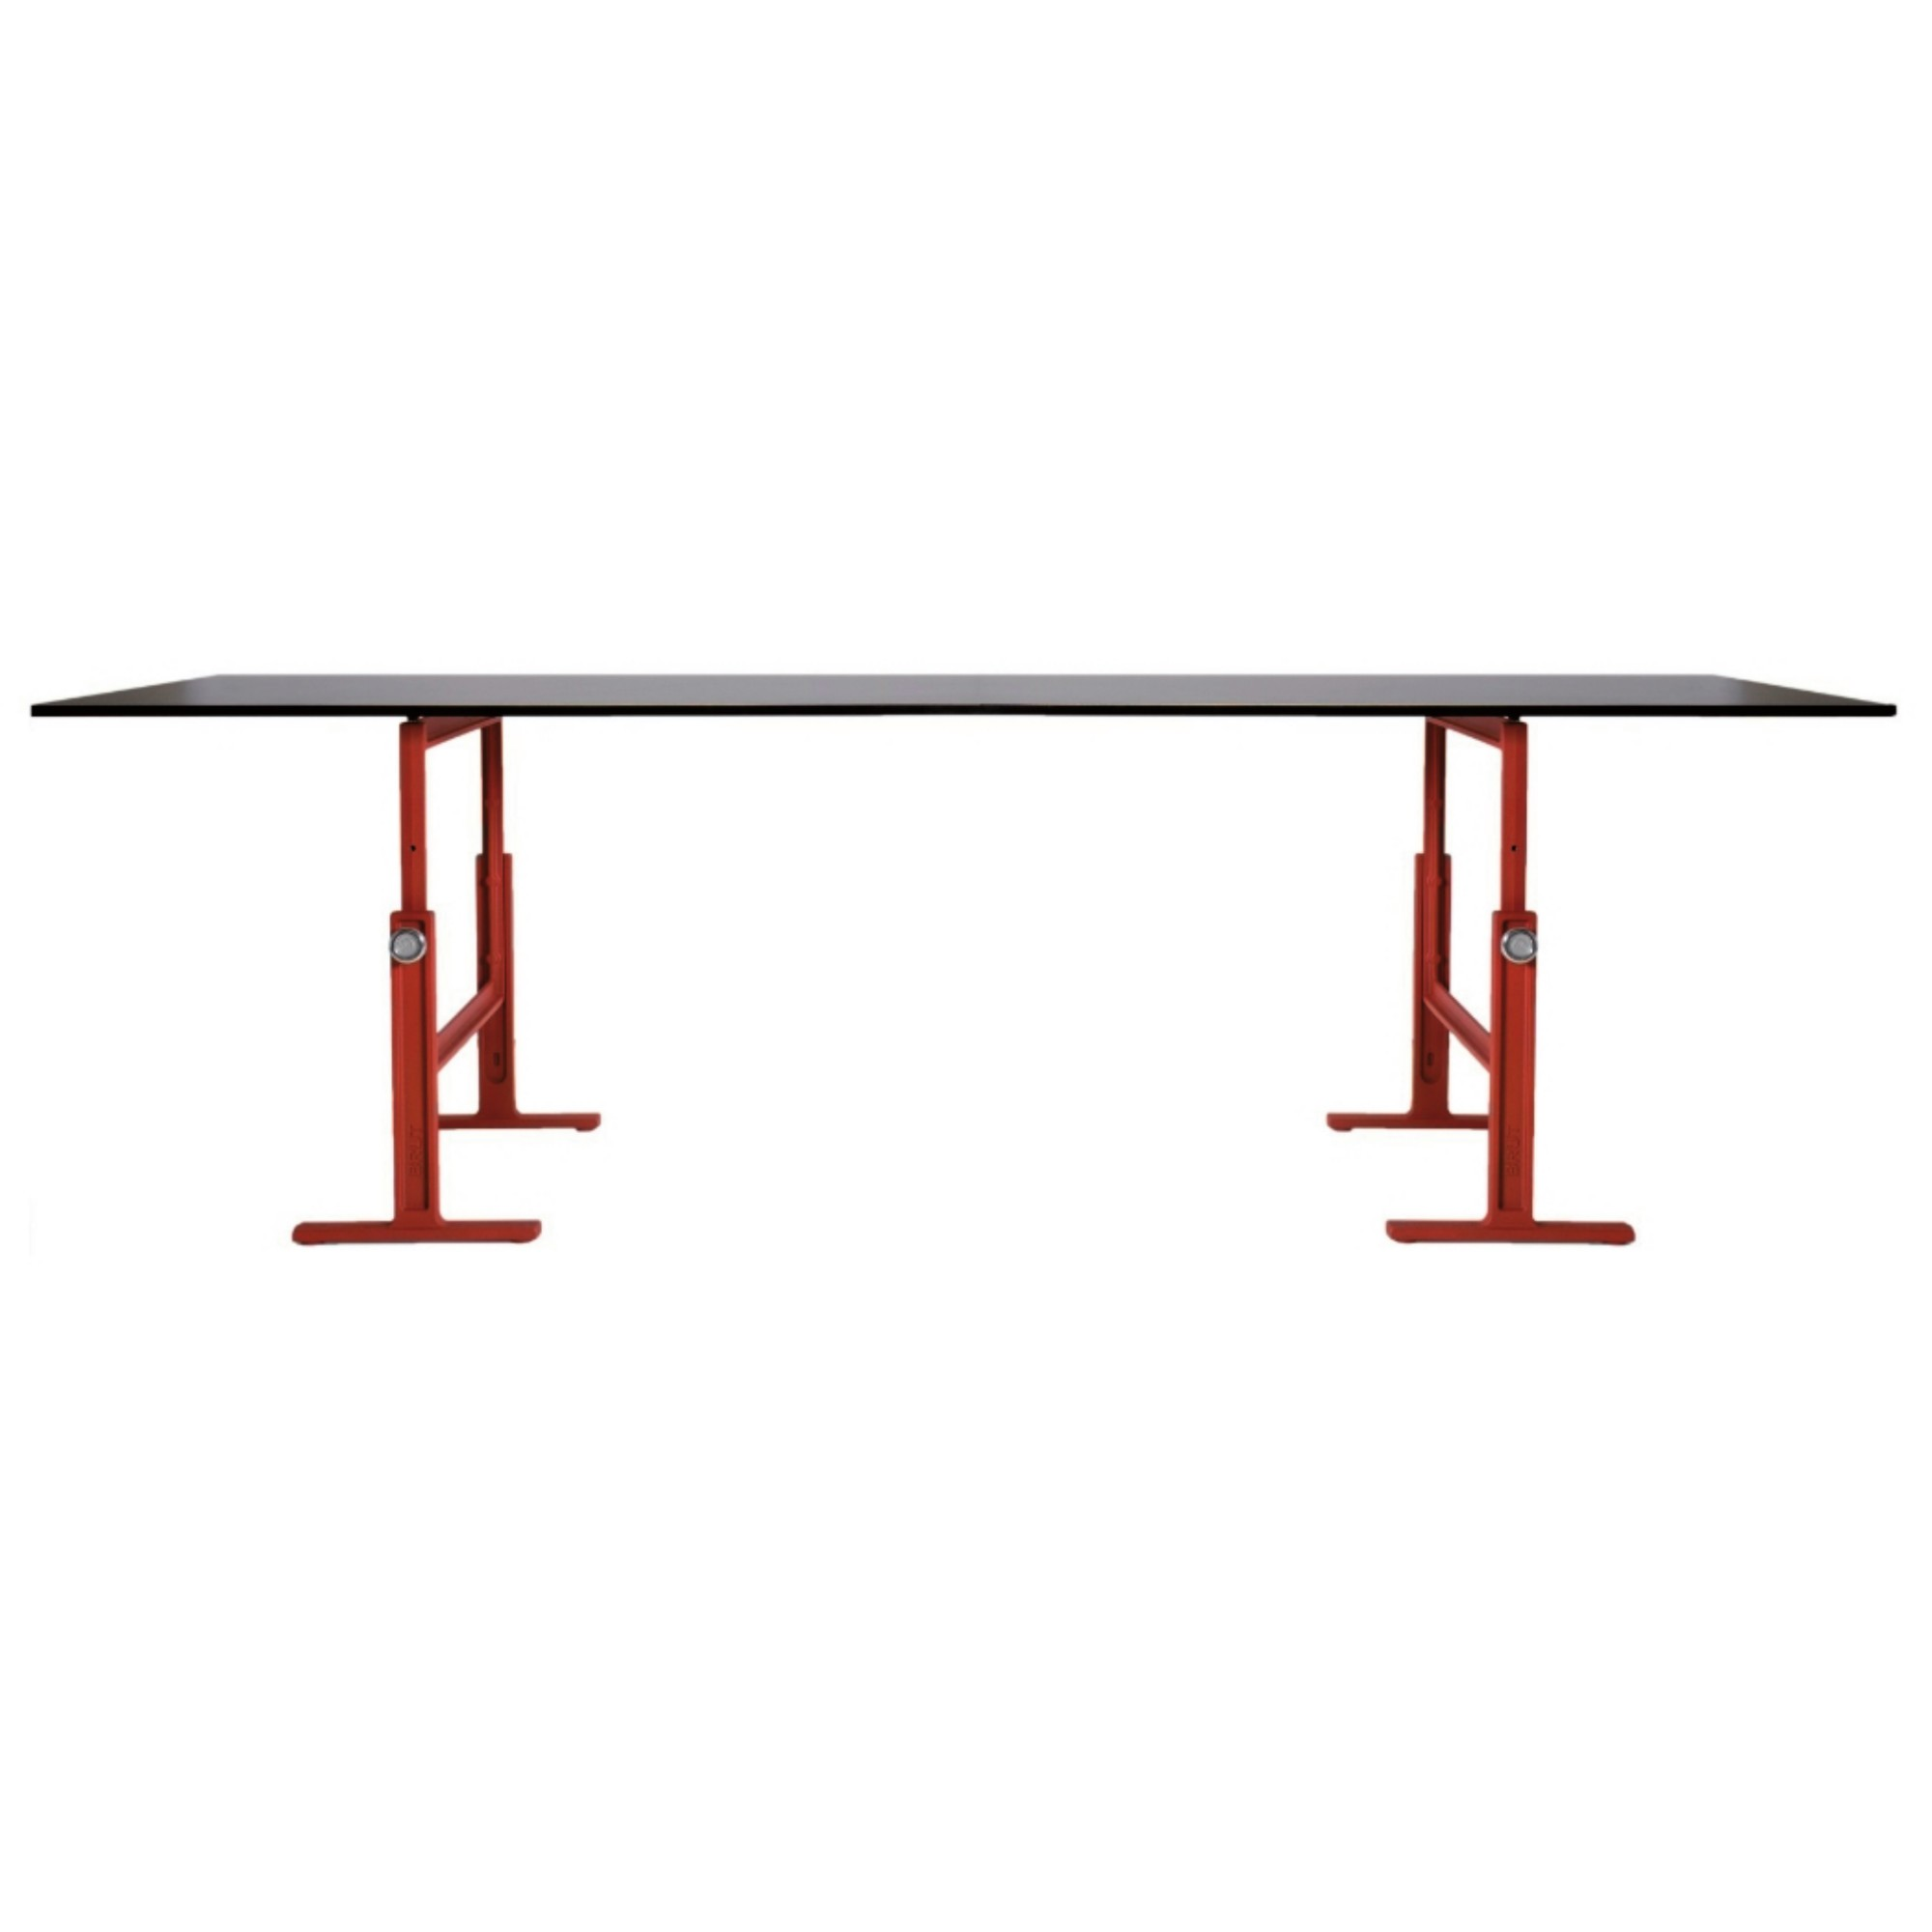 Brut Table - 02